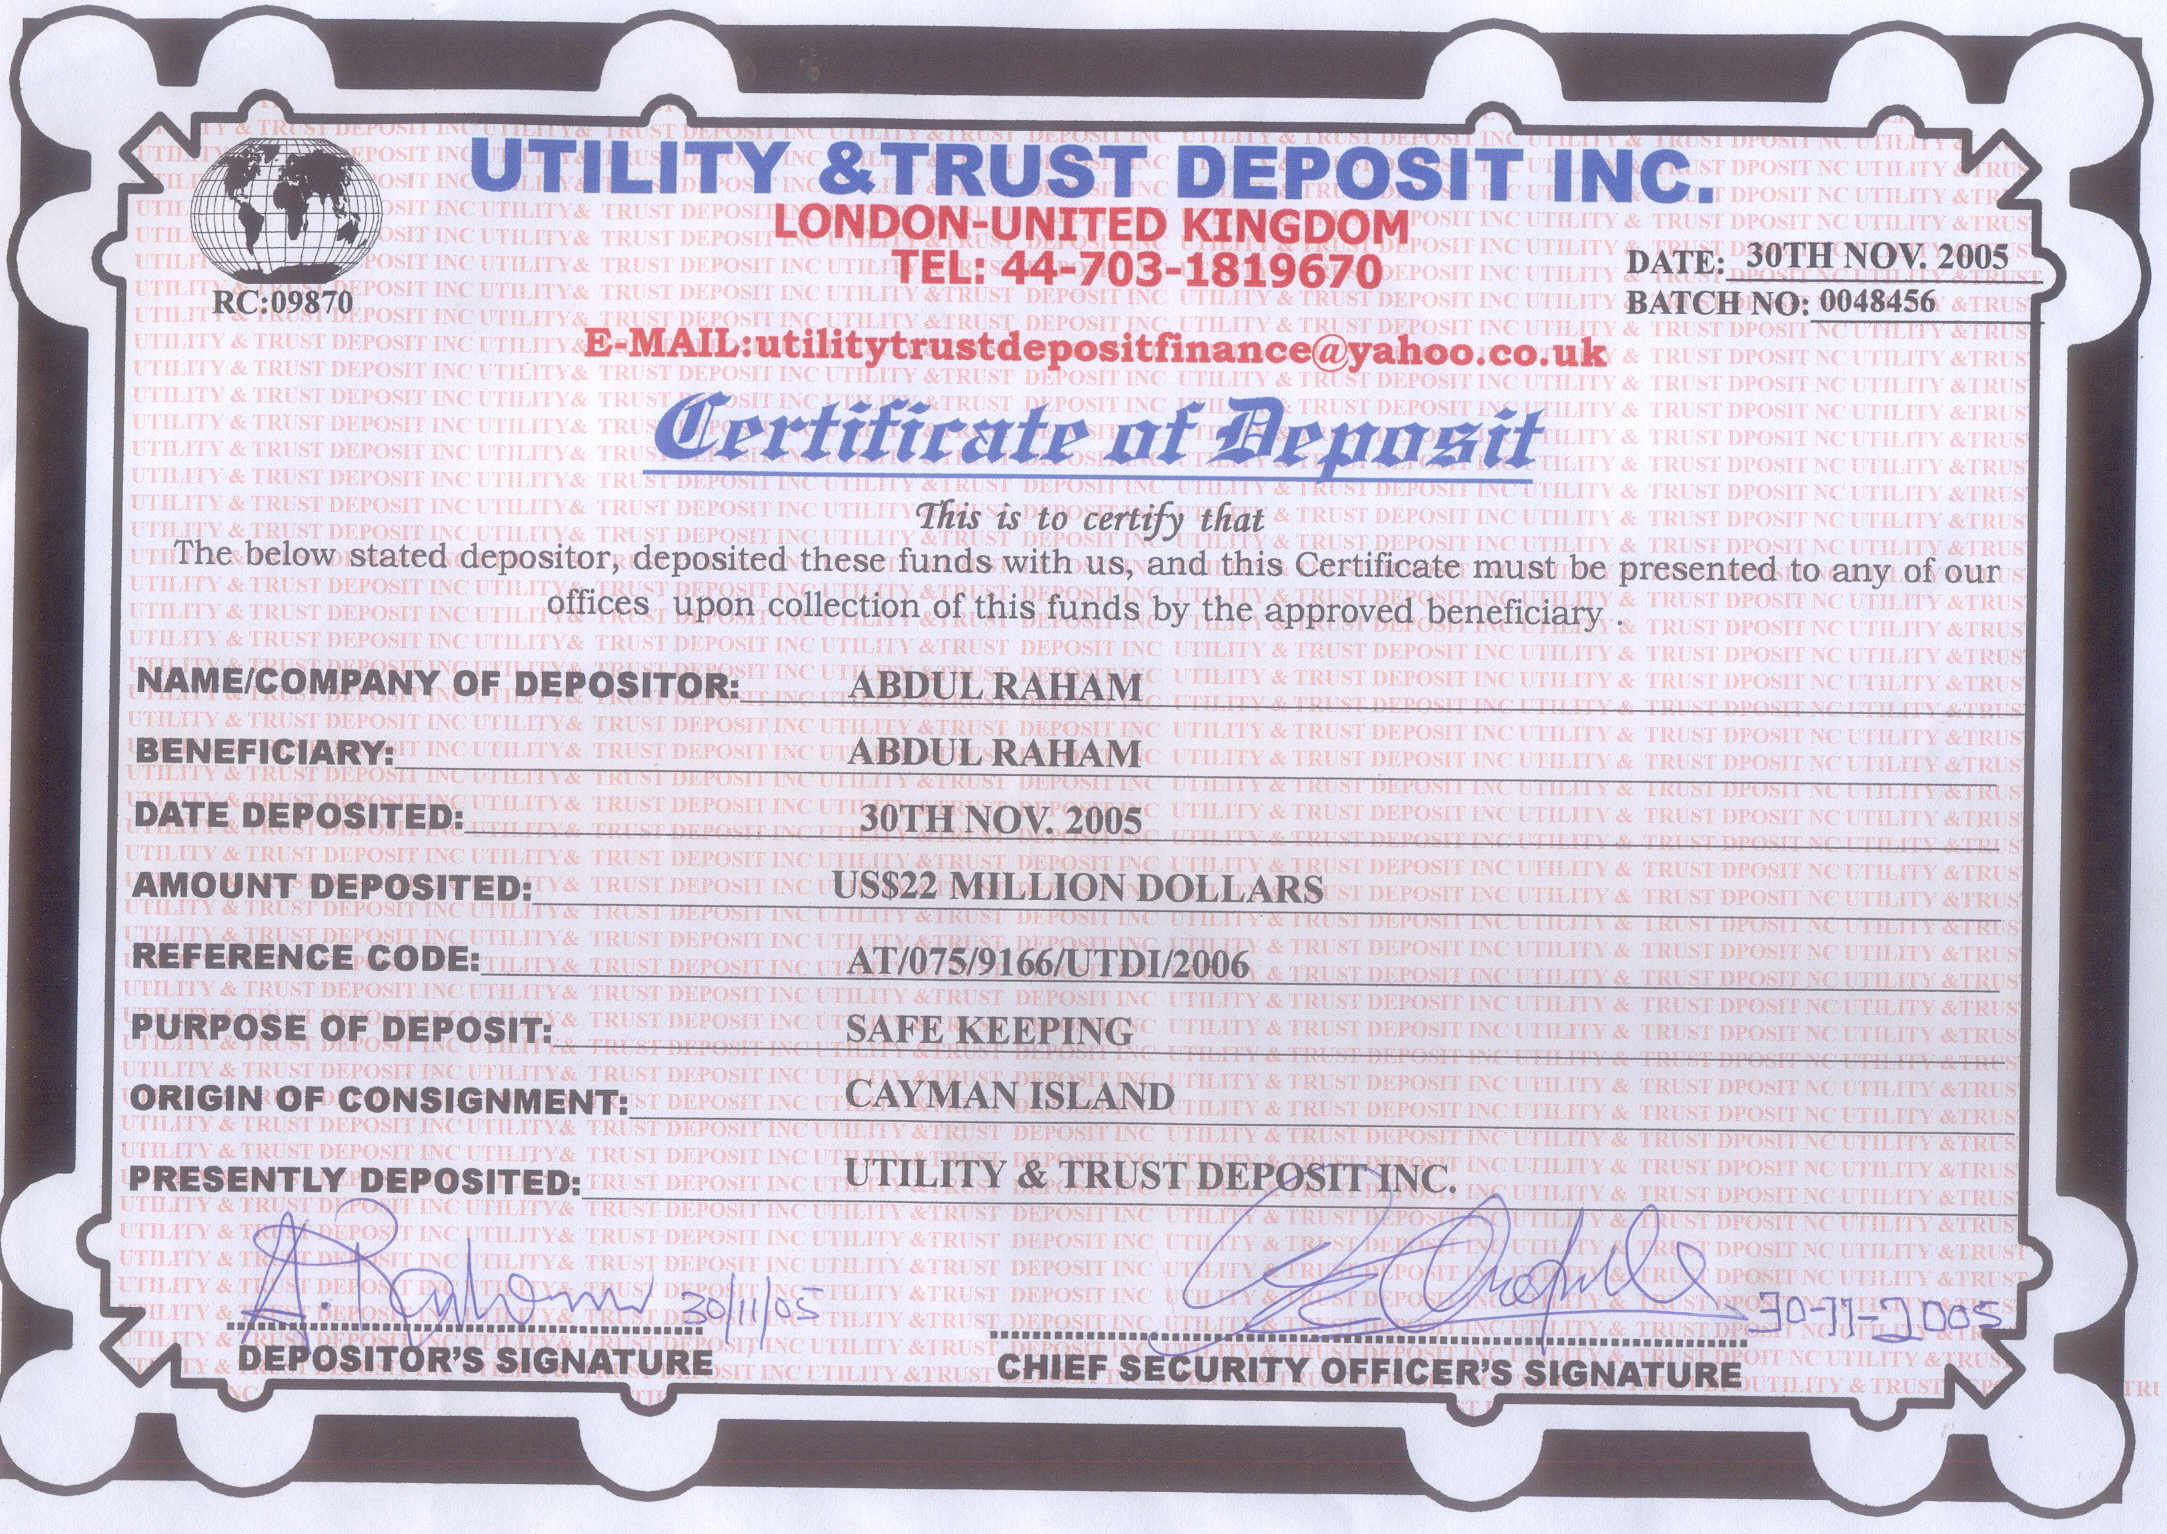 Fresh pictures of what is certificate of deposit business cards bensmash v7 from what is certificate of deposit image source bensmash xflitez Images